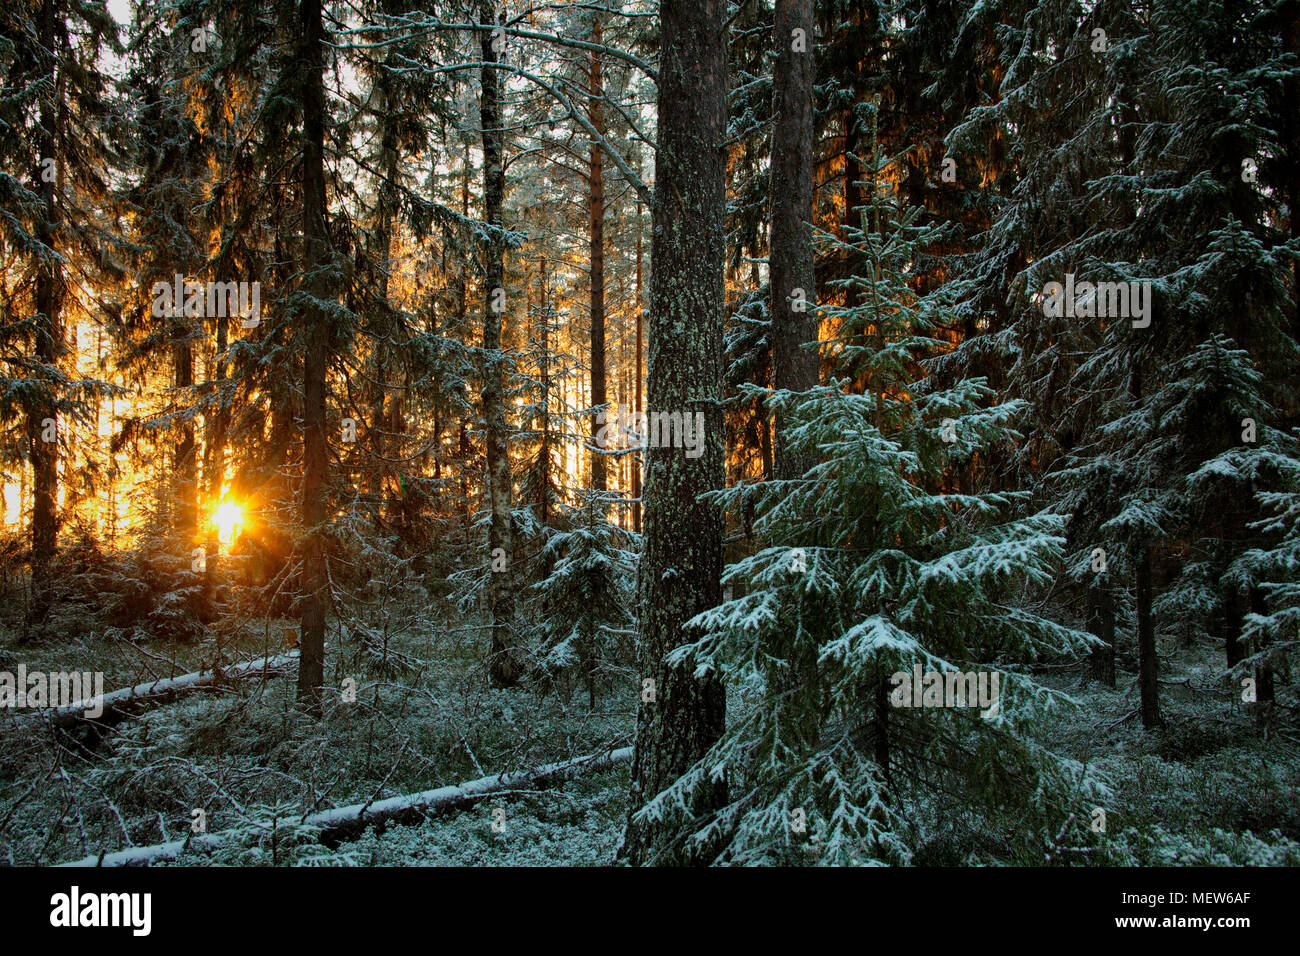 The low winter sun shines through  fost covered trees in a wintry forest. Stock Photo